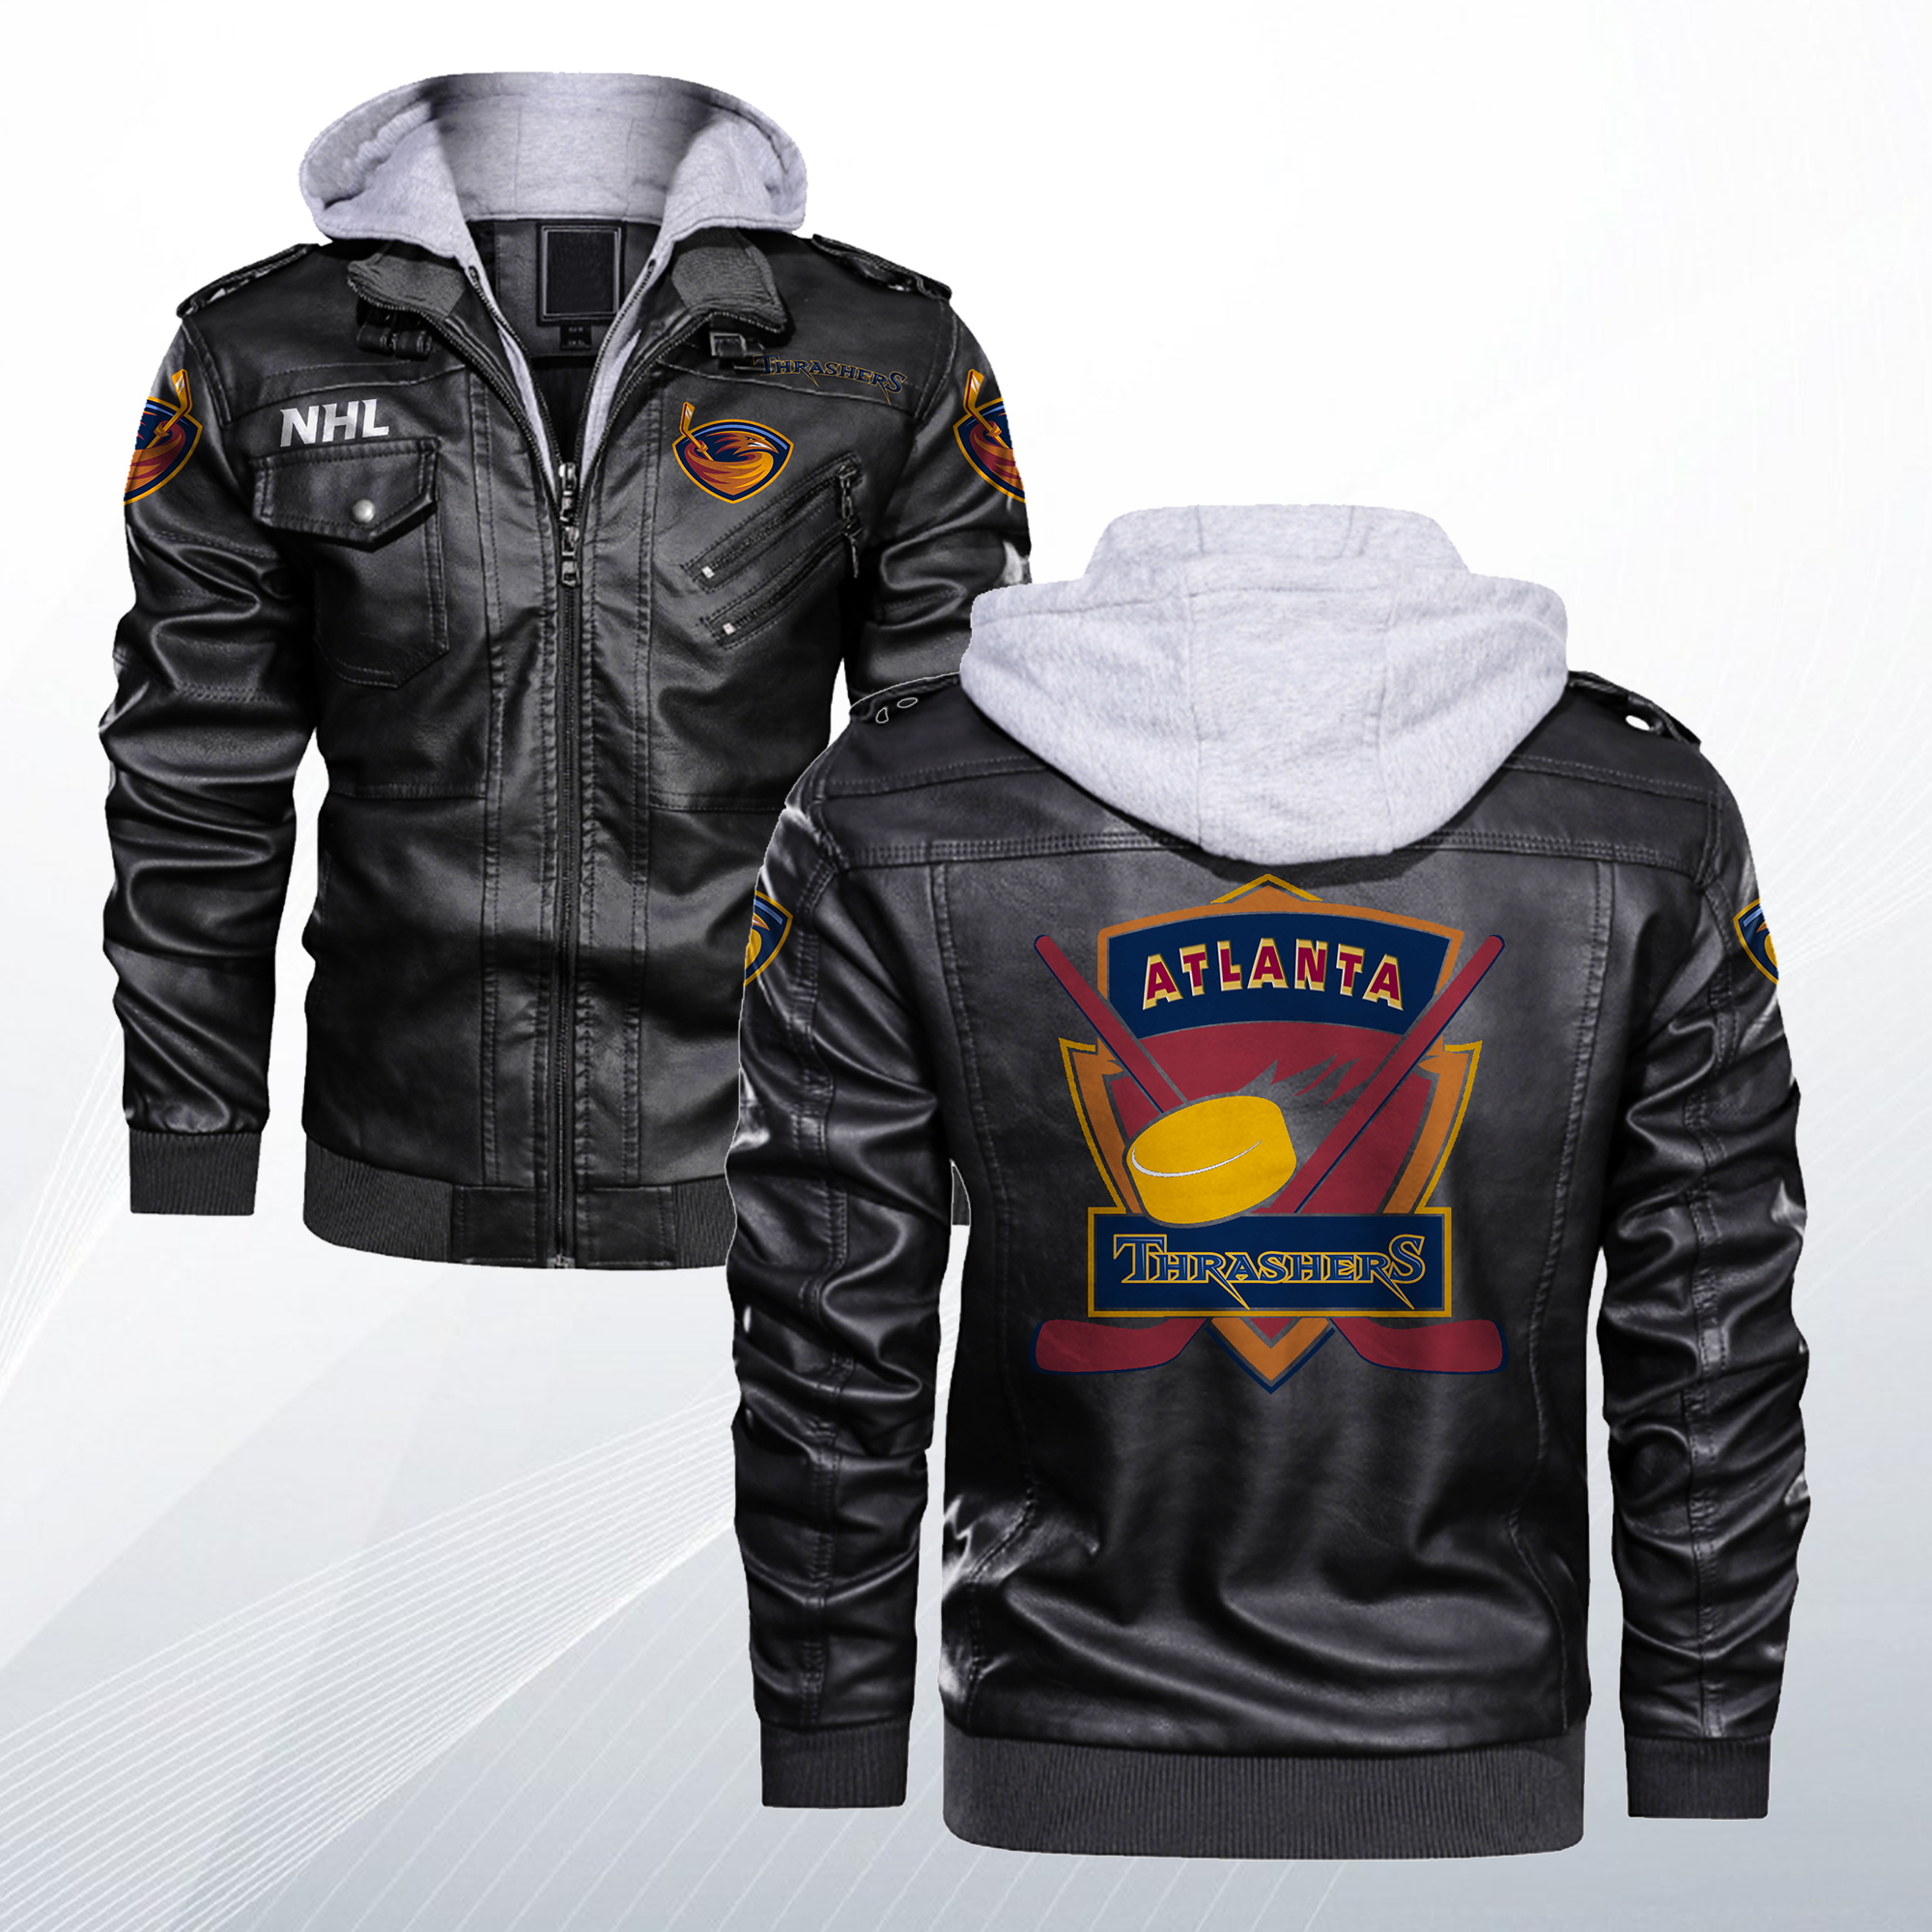 Made Of Premium Crafted Faux Leather To Give You A Genuinely High Quality Jacket Has A Removable Hoodie Our Premium Crafted Prod Casual Jacket Jackets Casual [ 2000 x 2000 Pixel ]